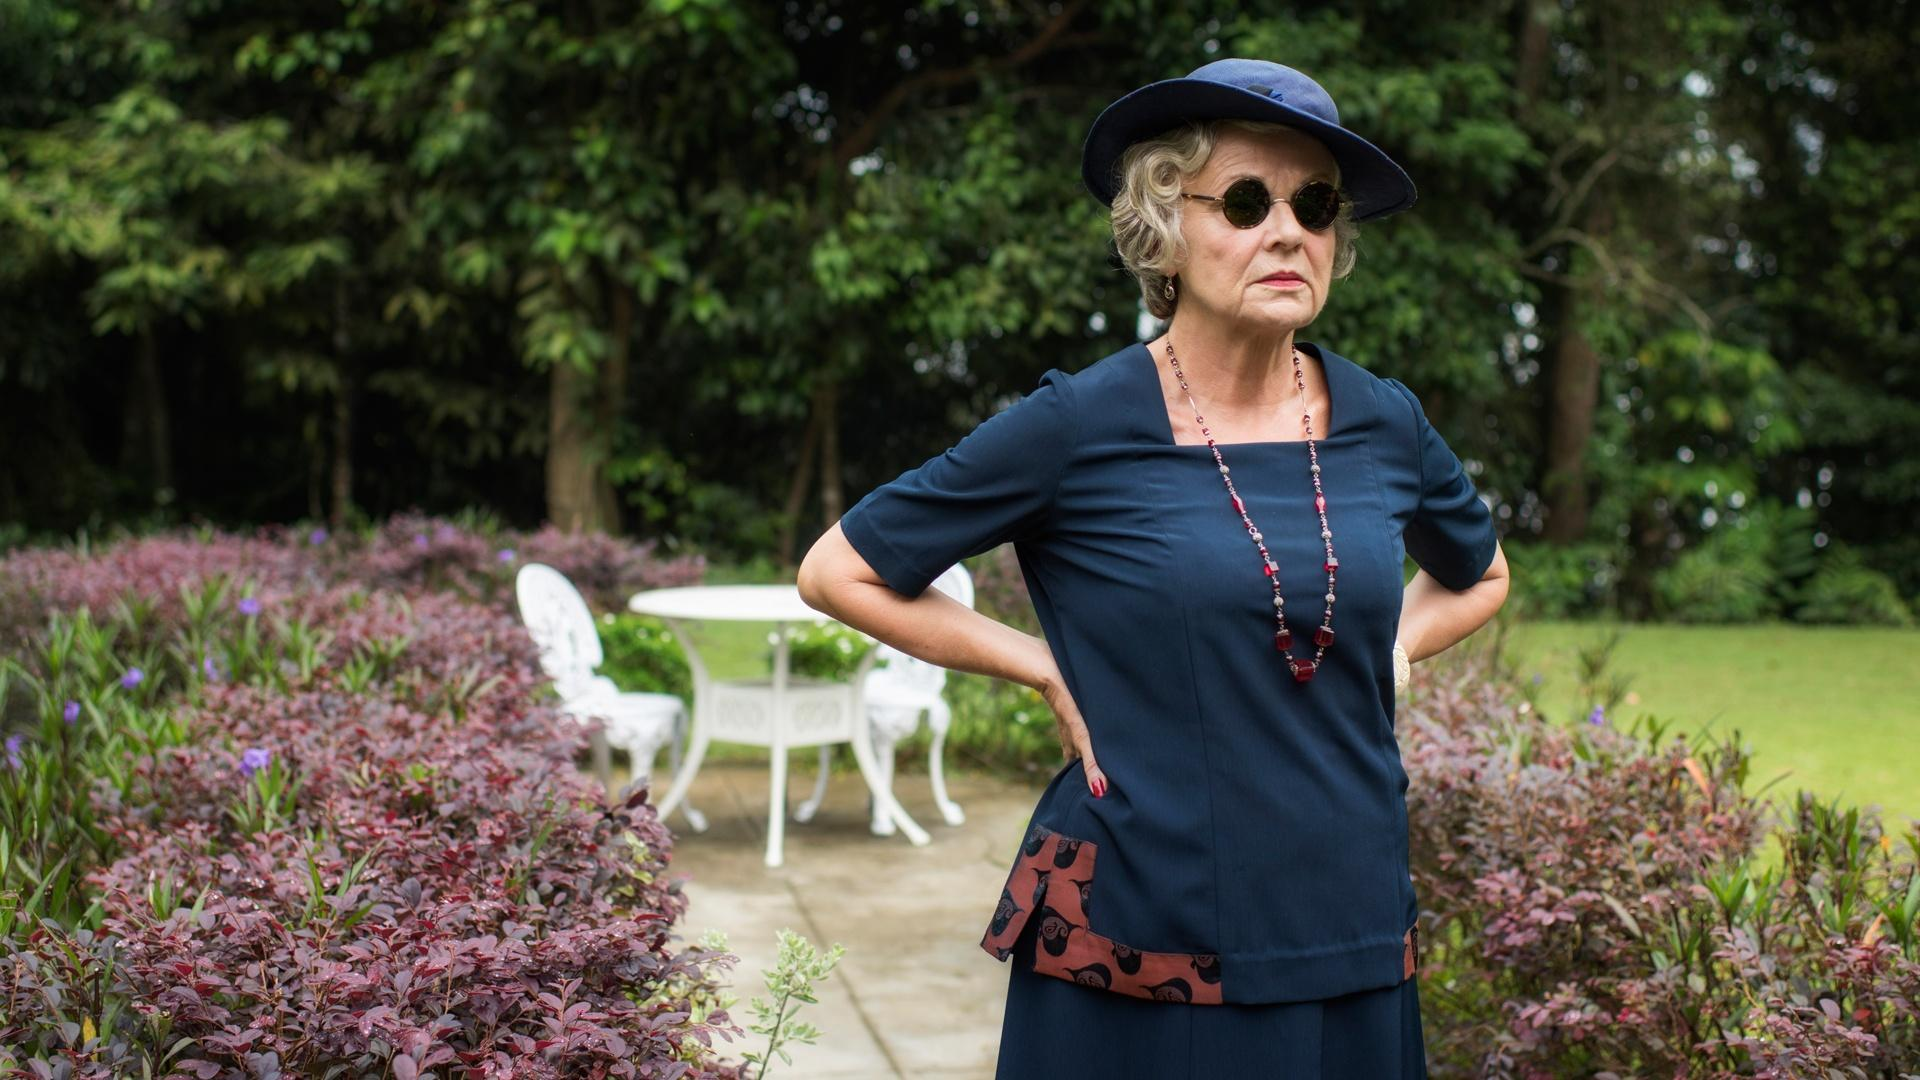 Indian Summers, Season 2: Episode 10